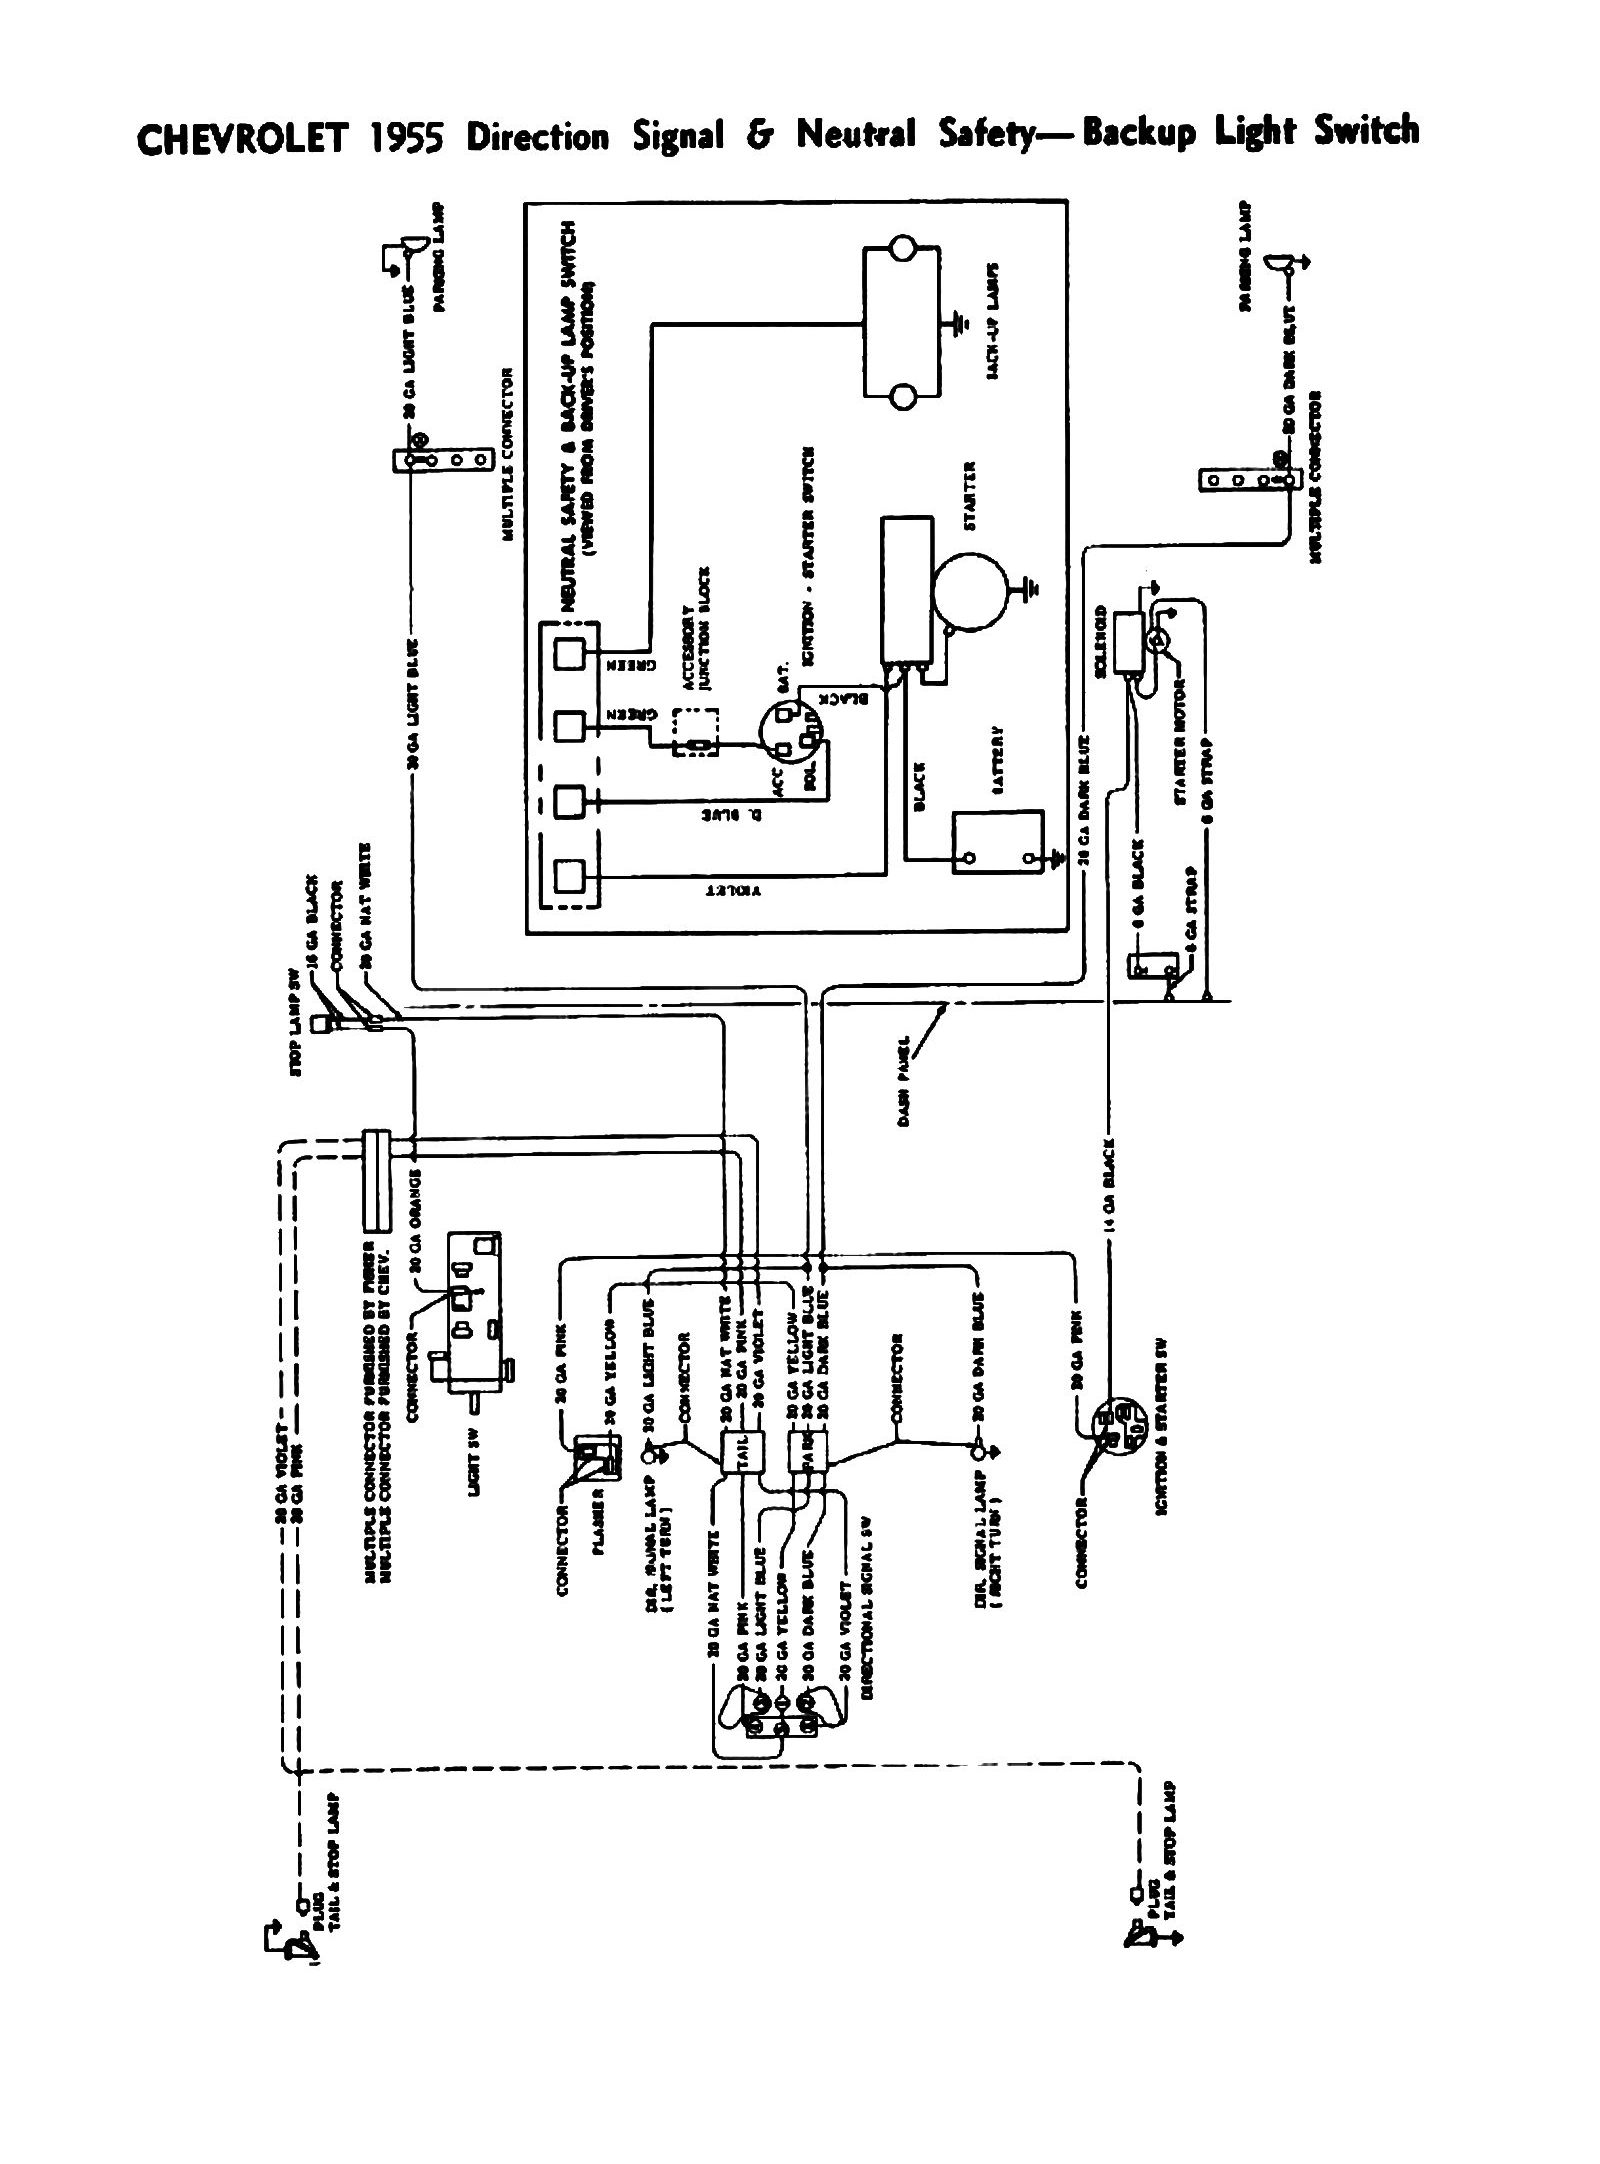 55signal wiring diagram for 1955 chevy bel air readingrat net Chevy Truck Wiring Diagram at cos-gaming.co